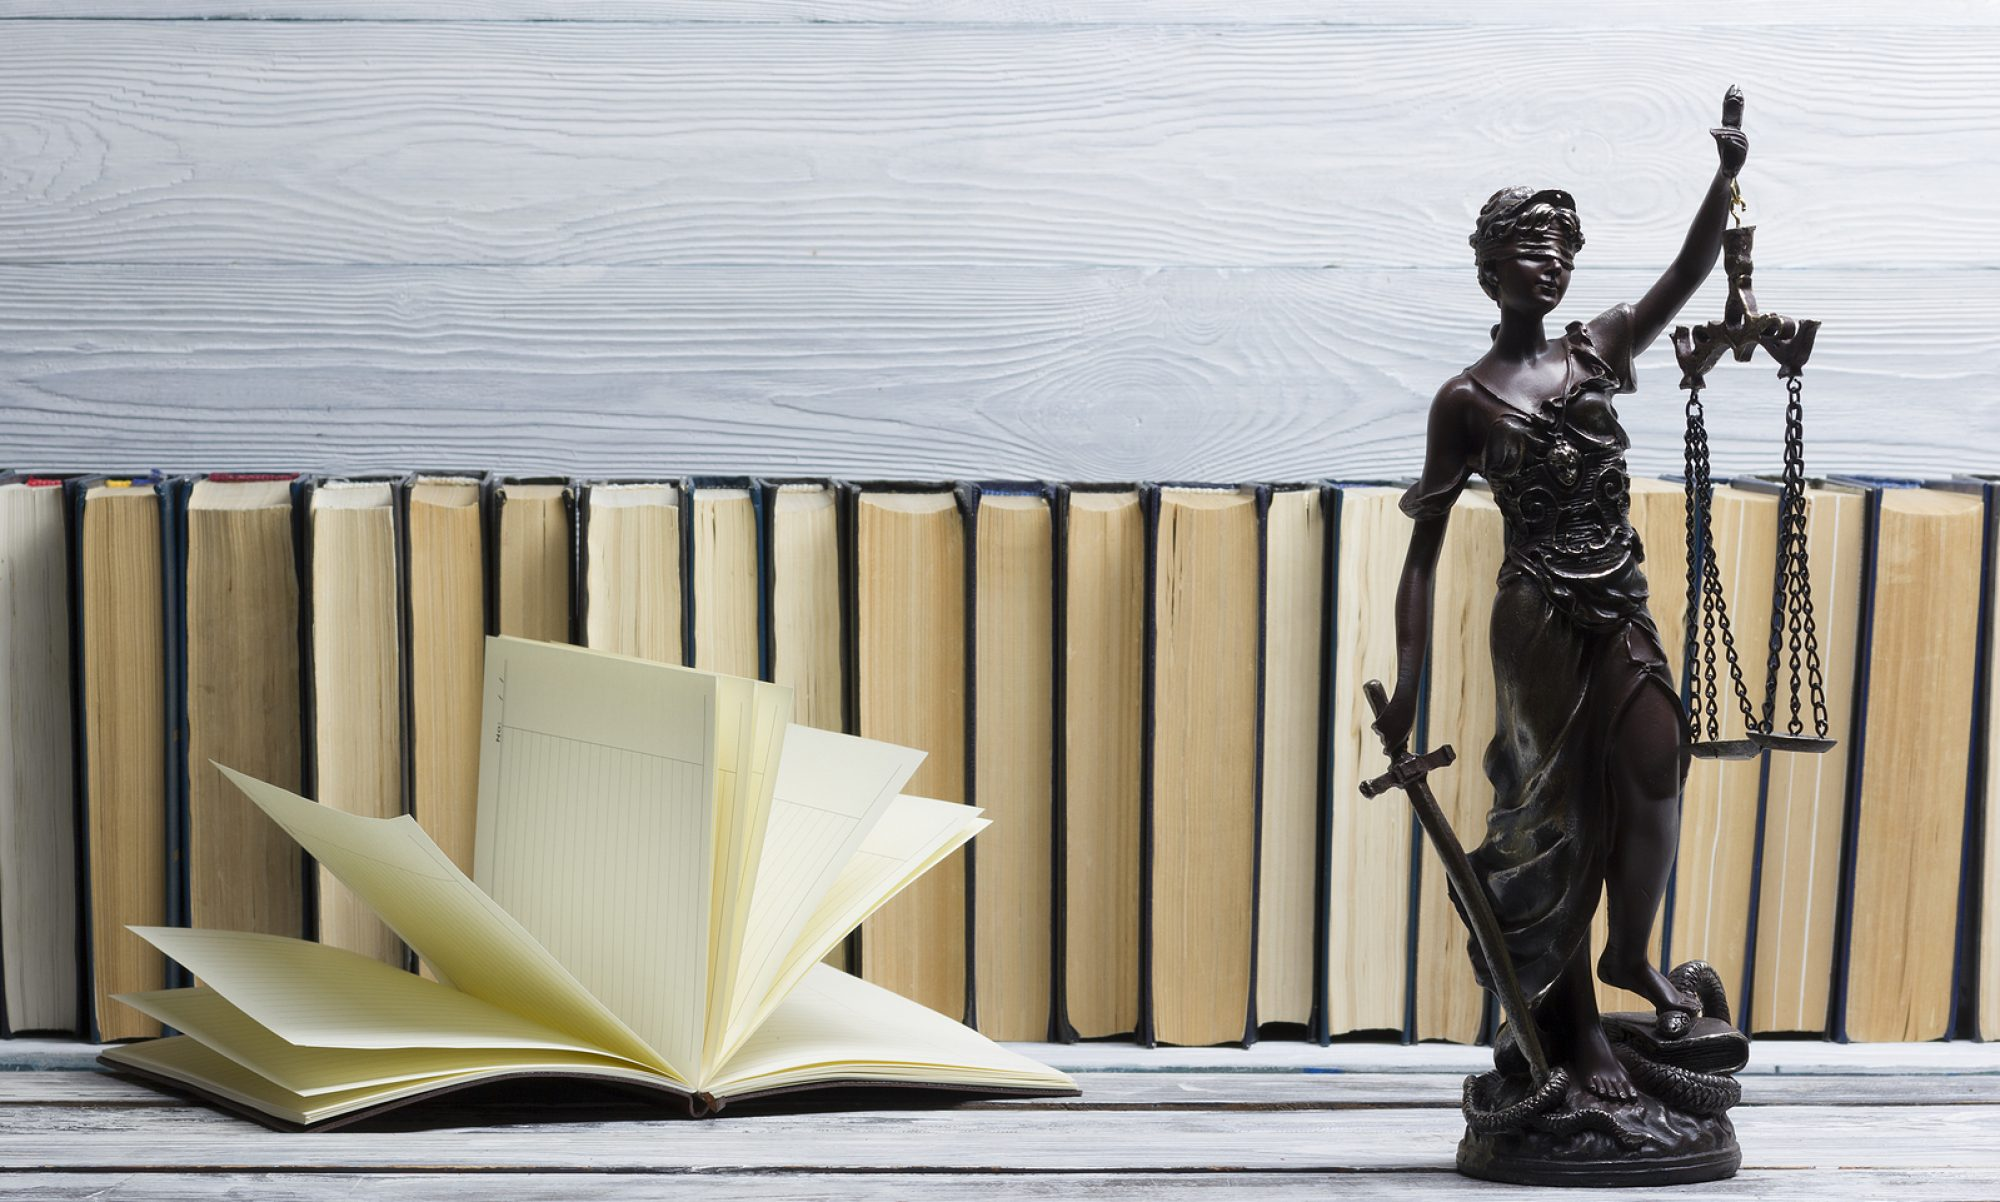 The Lipowicz Law Firm - Family Law & Bankruptcy Law - St. Louis, MO